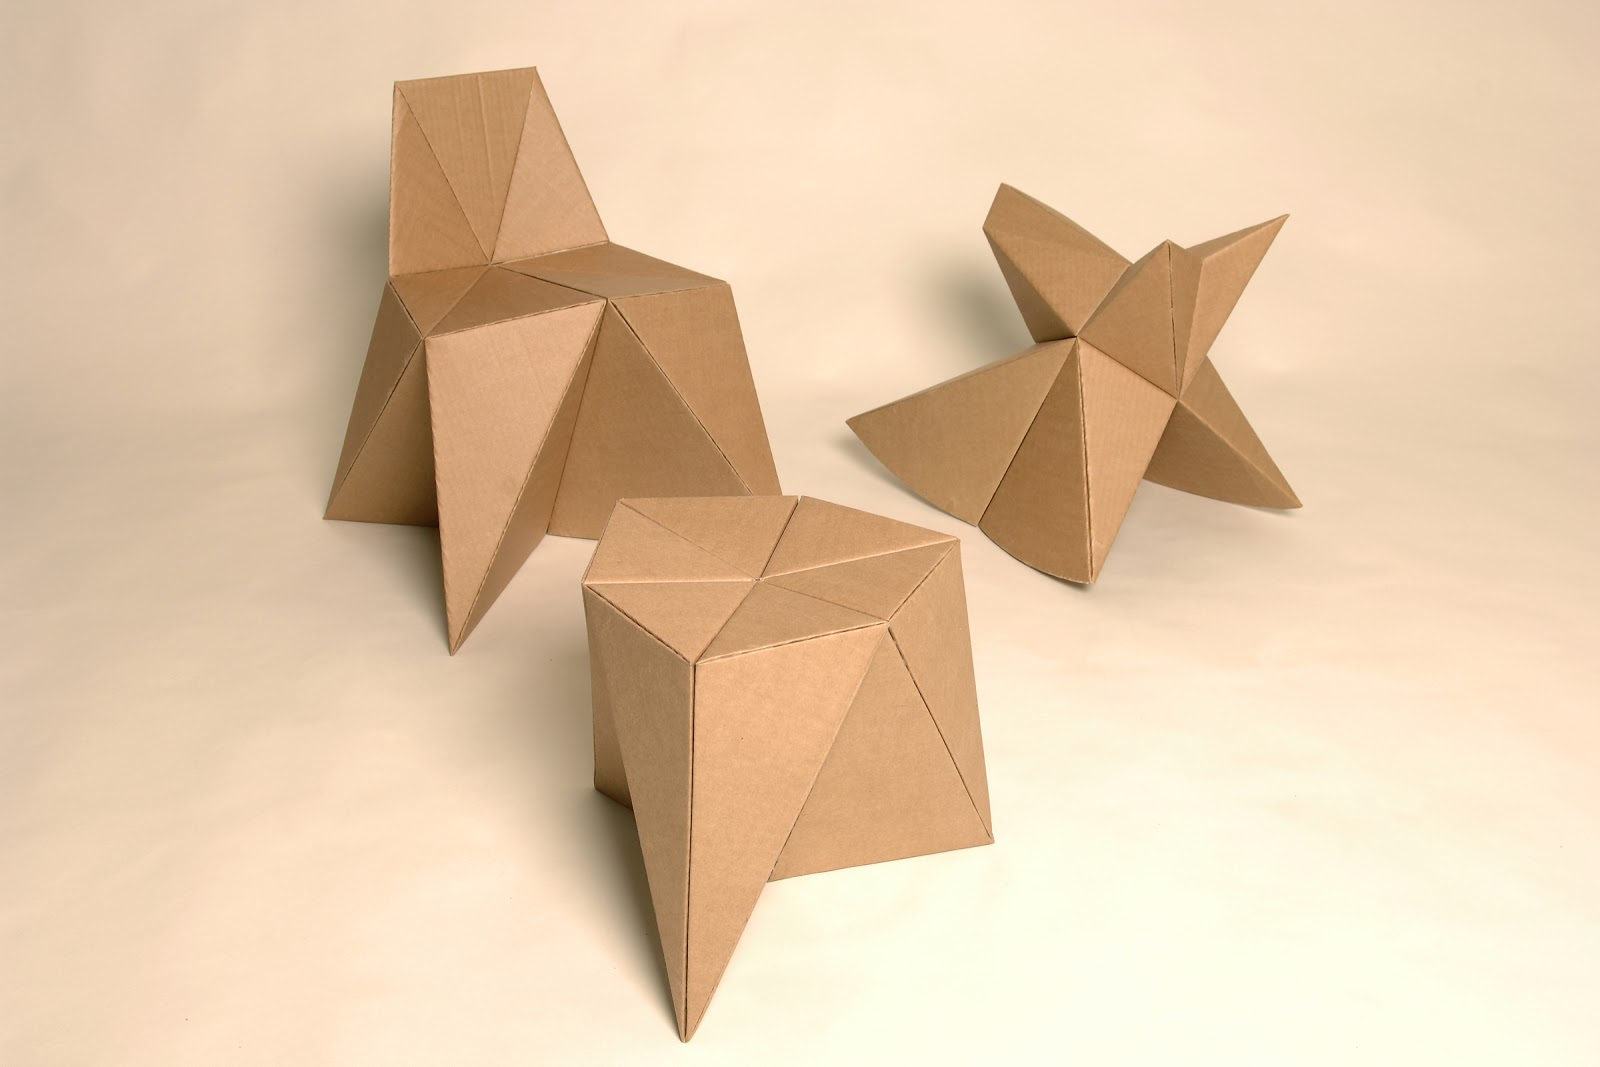 diy cardboard furniture. I Have Yet To Try Them Out, But Apparently The Folding Of Cardboard Makes It Very Solid And Can Carry Weight An Adult Without Problem. Diy Furniture